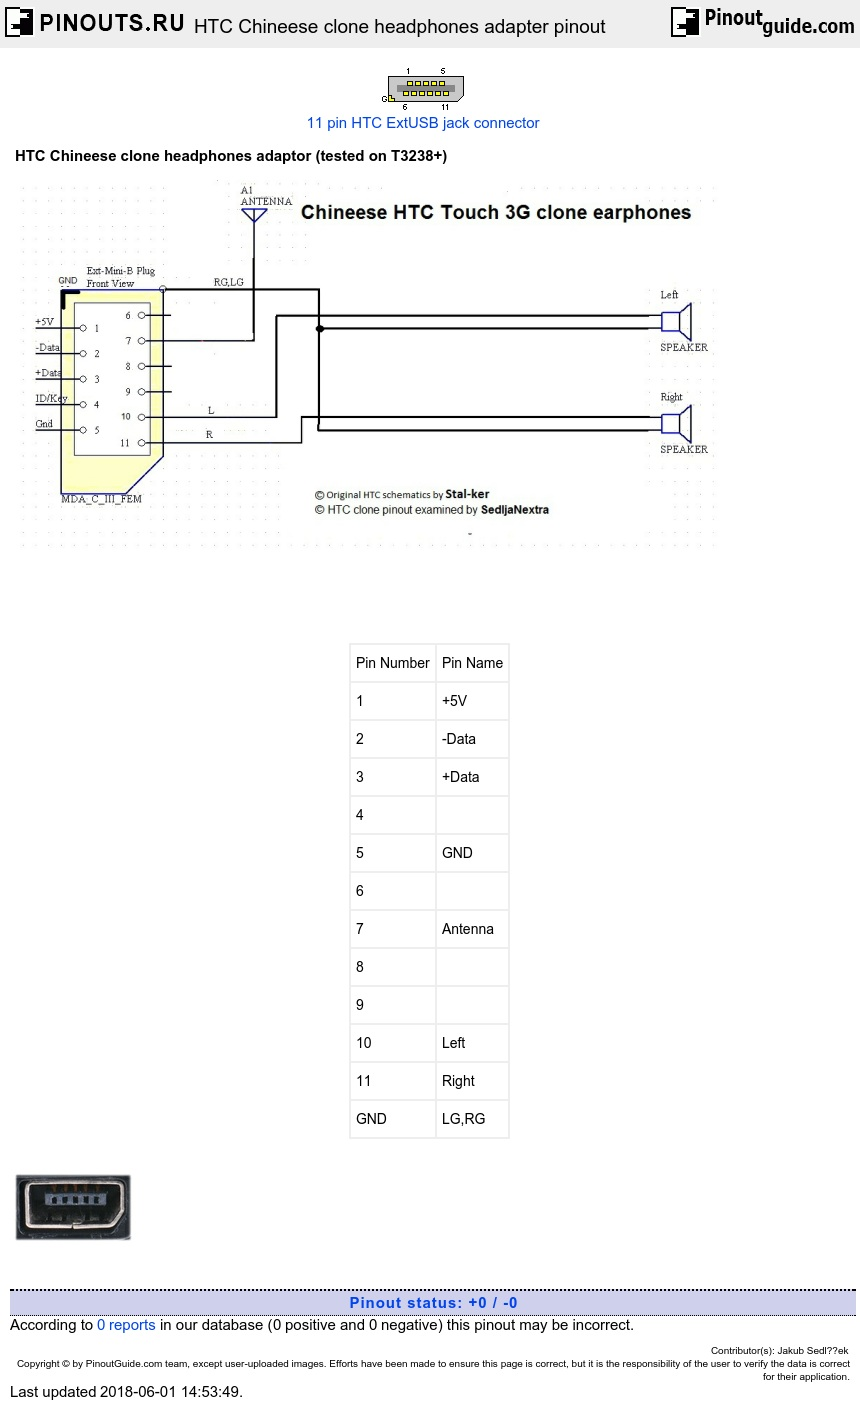 Htc chineese clone headphones adapter pinout diagram pinoutguide htc chineese clone headphones adapter diagram pooptronica Images